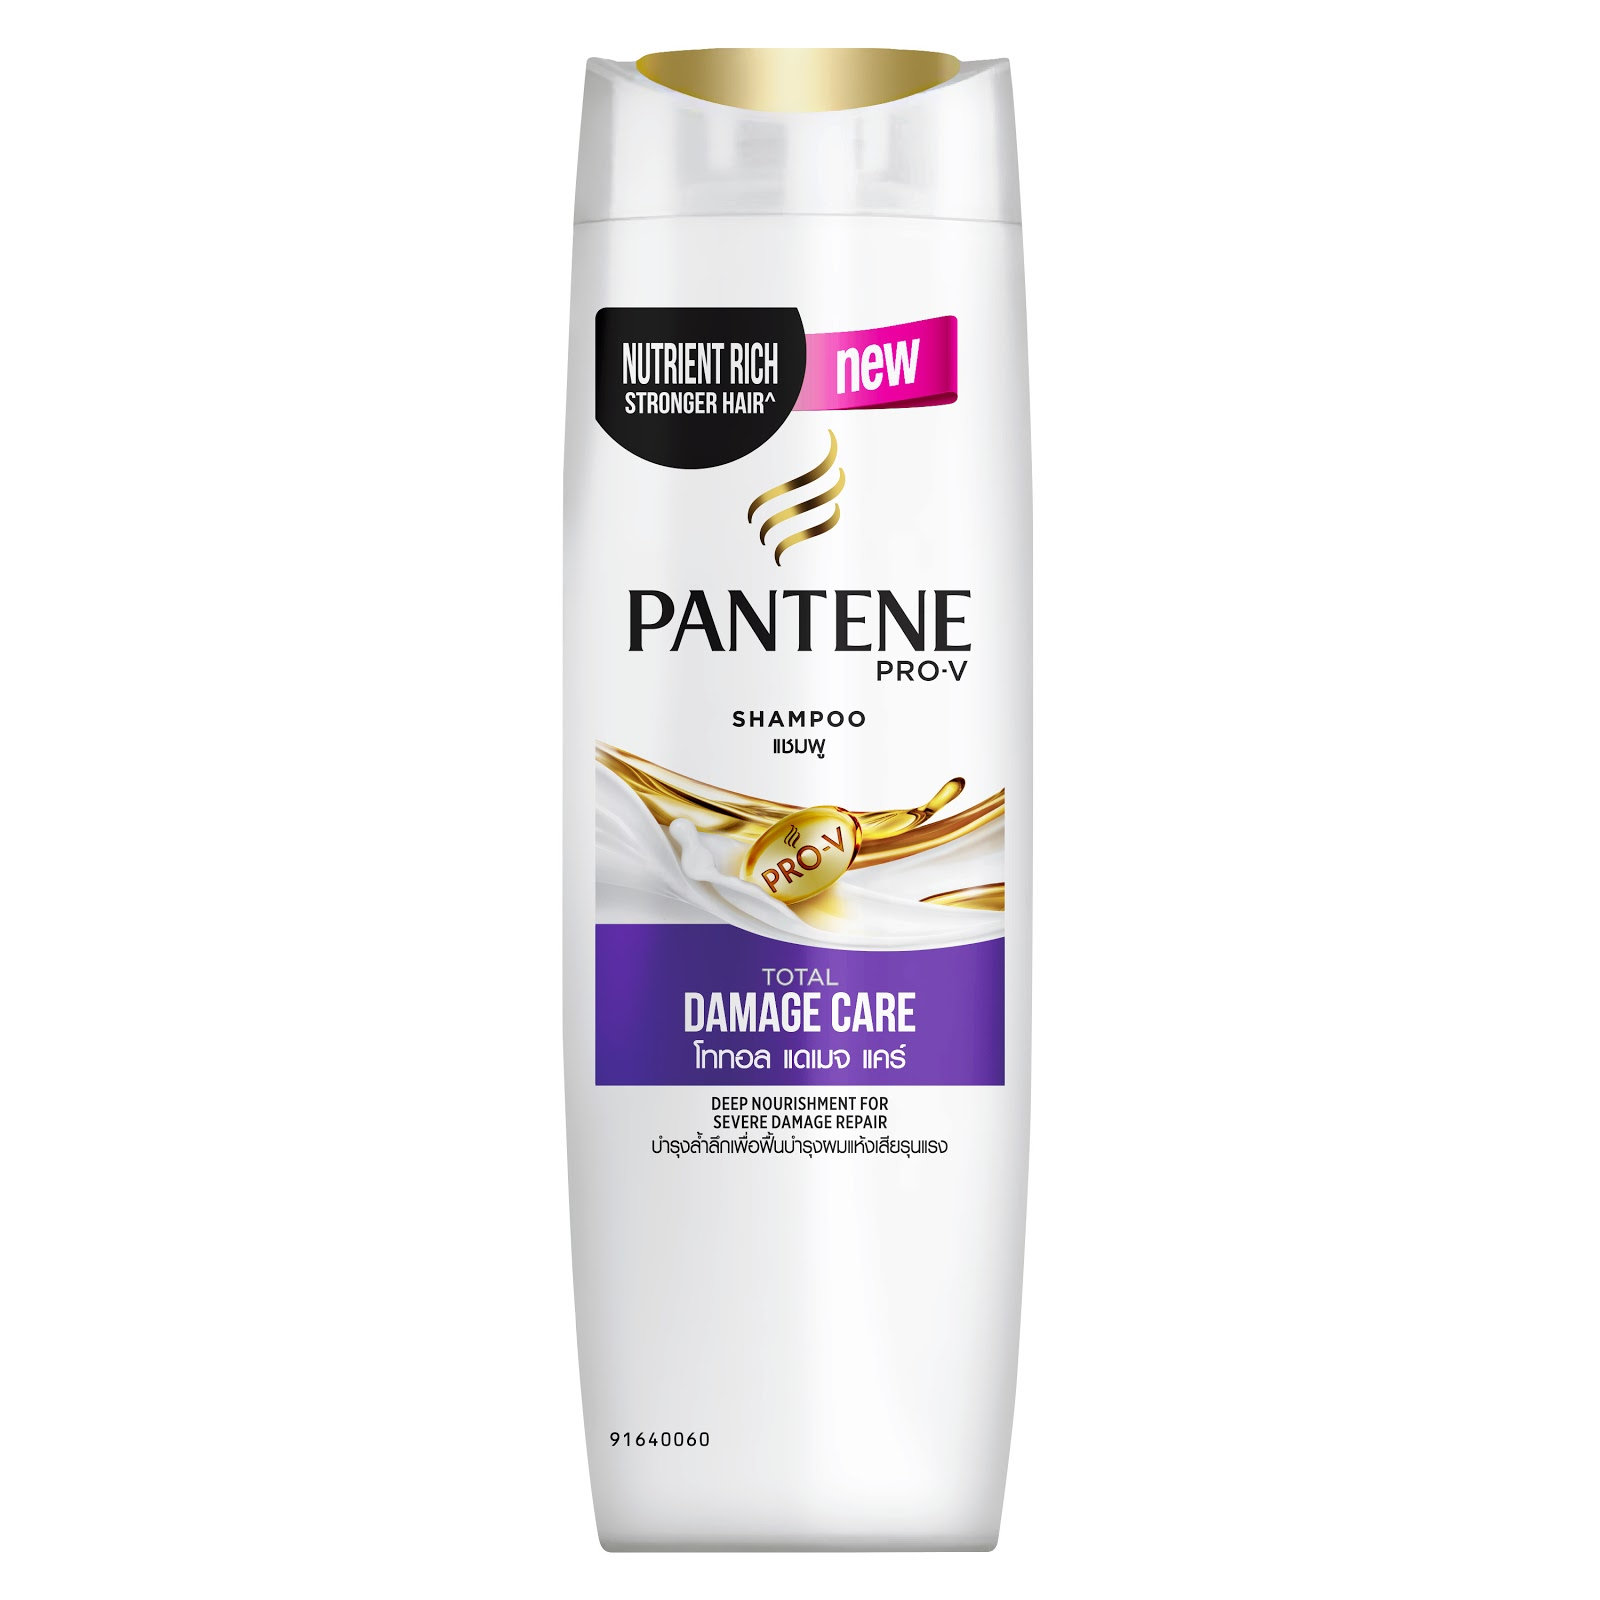 Pantene damage repair shampoo treatment for dry hair